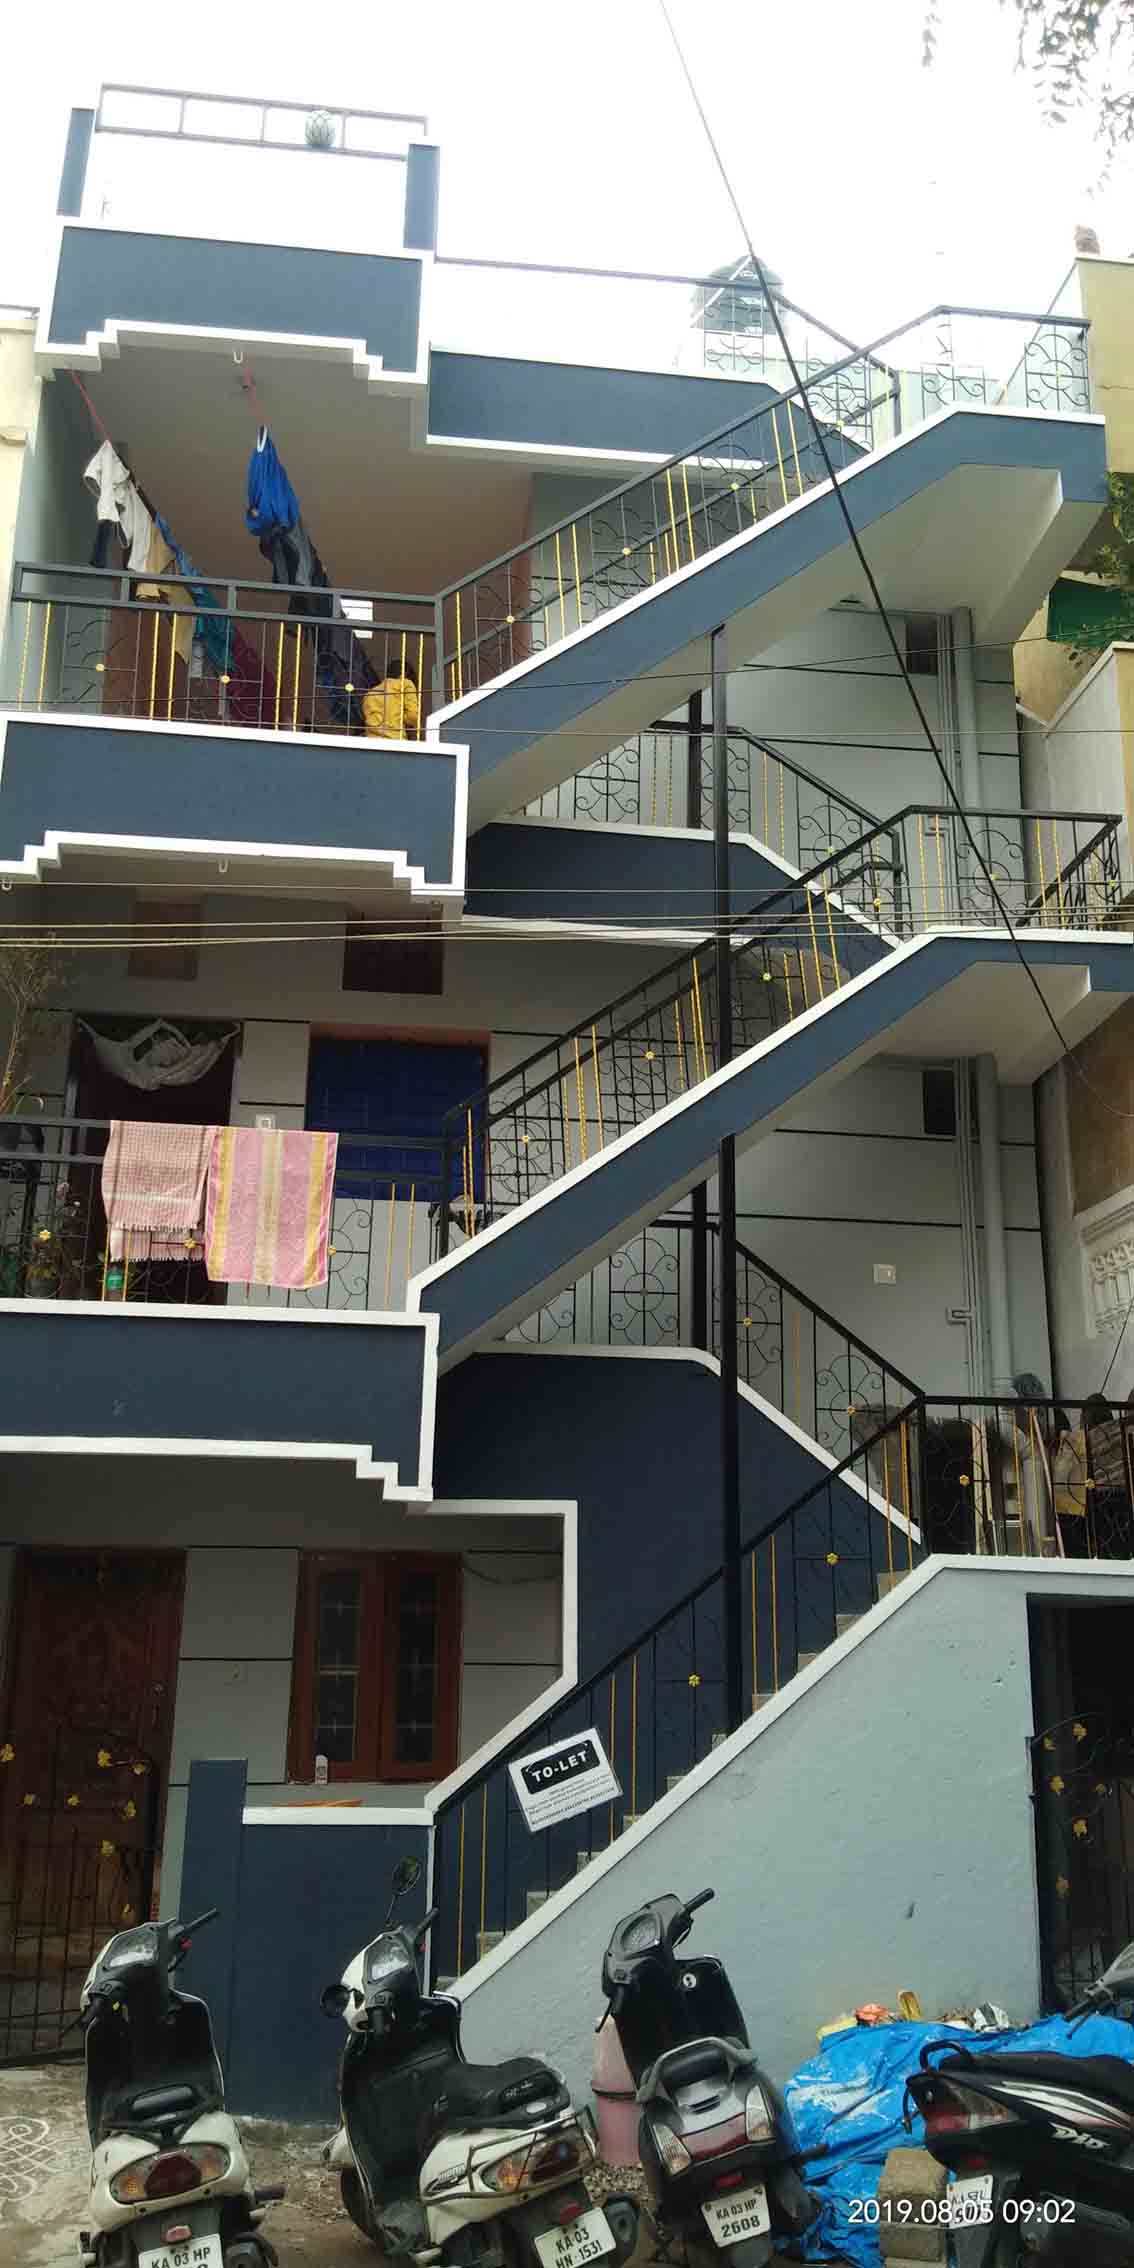 For Lease its 2 BHK house and comfortable this lovely 2 BHK could be your new home, after deposit give has 20 days for painting